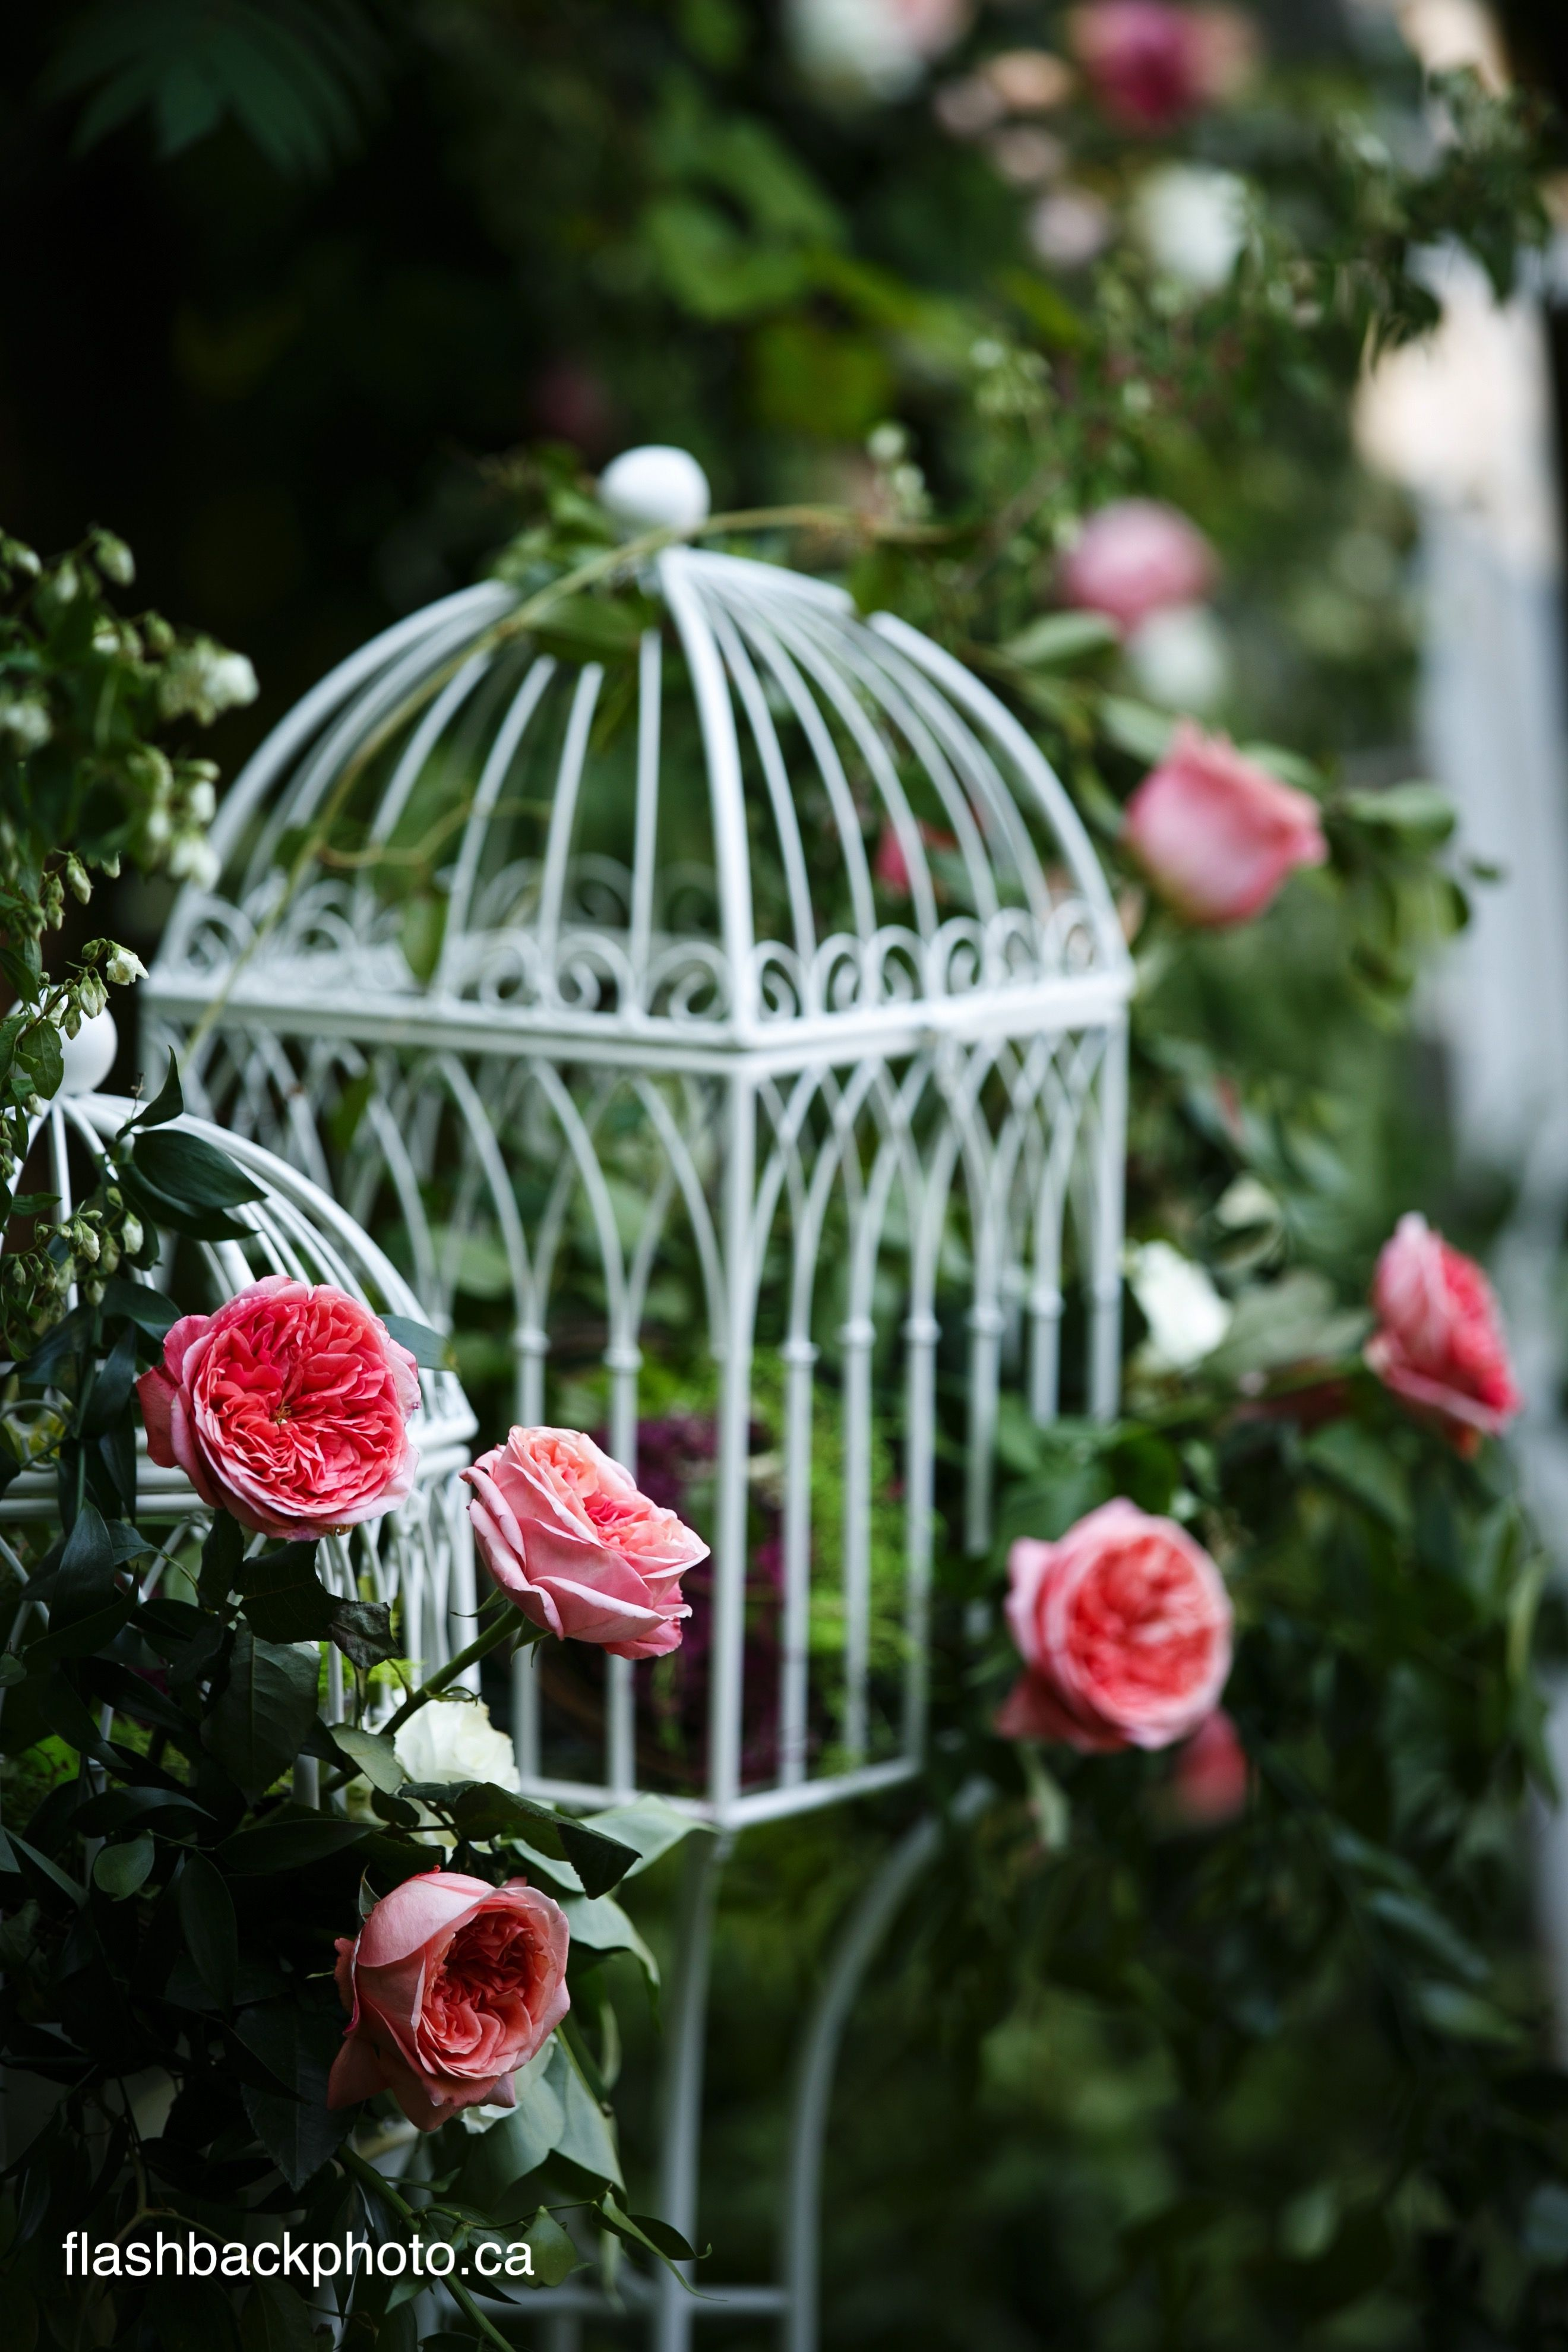 Decorative bird cage draped in roses lining path between ...